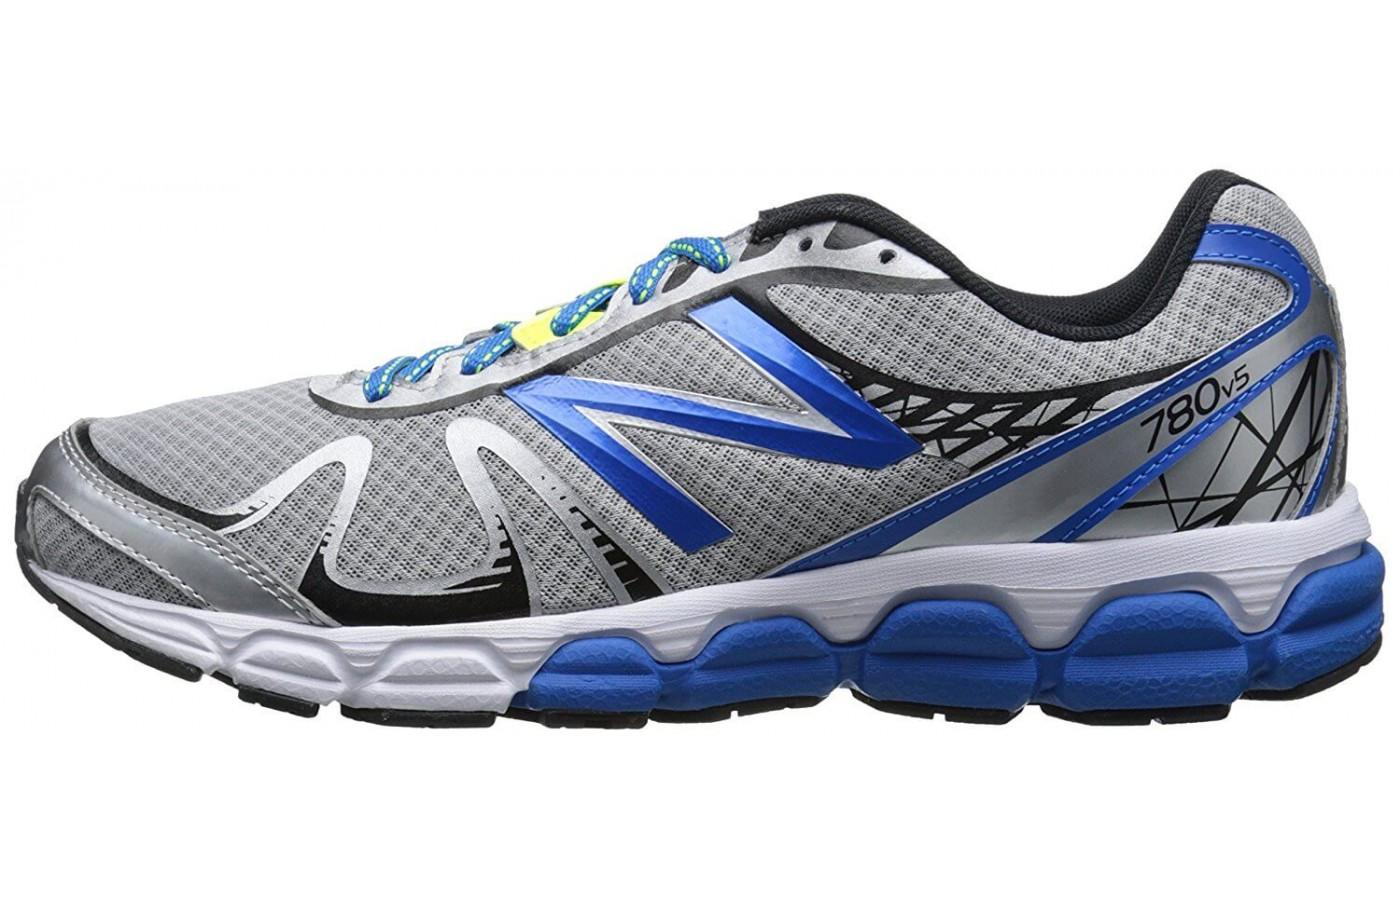 the New Balance 780 v5 is lightweight with good cushioning